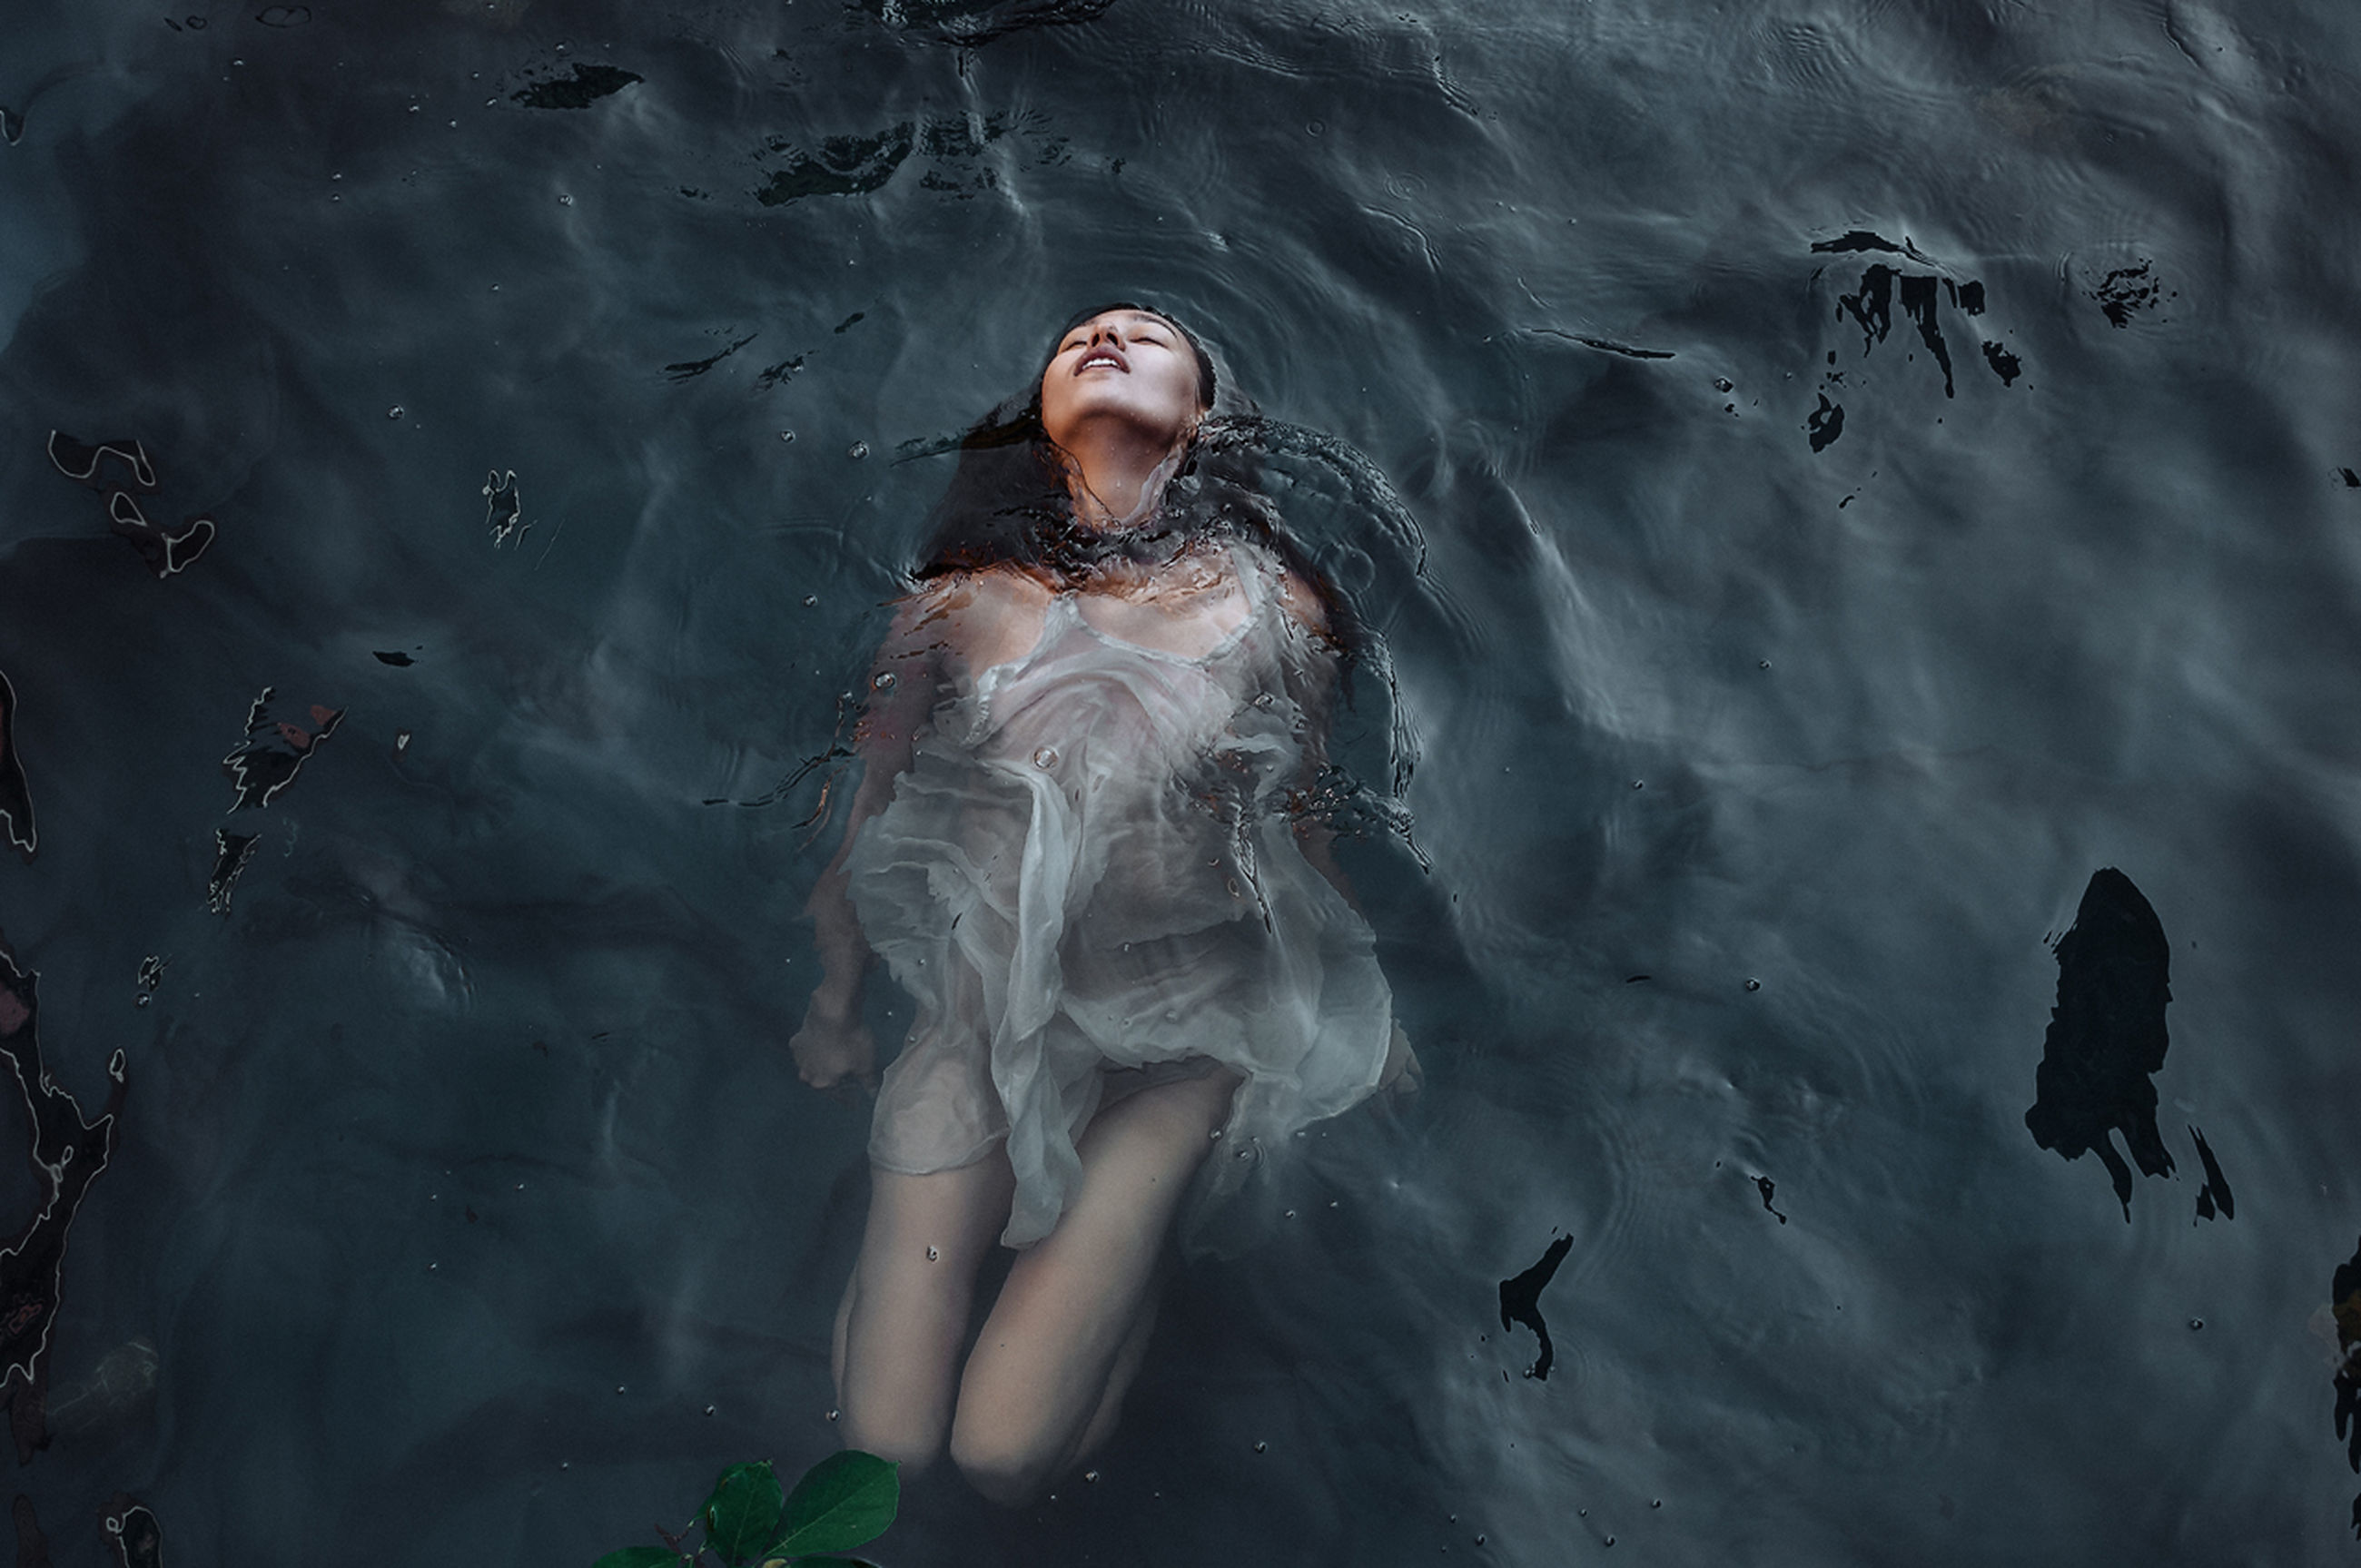 YOUNG WOMAN IN WATER AT PARK